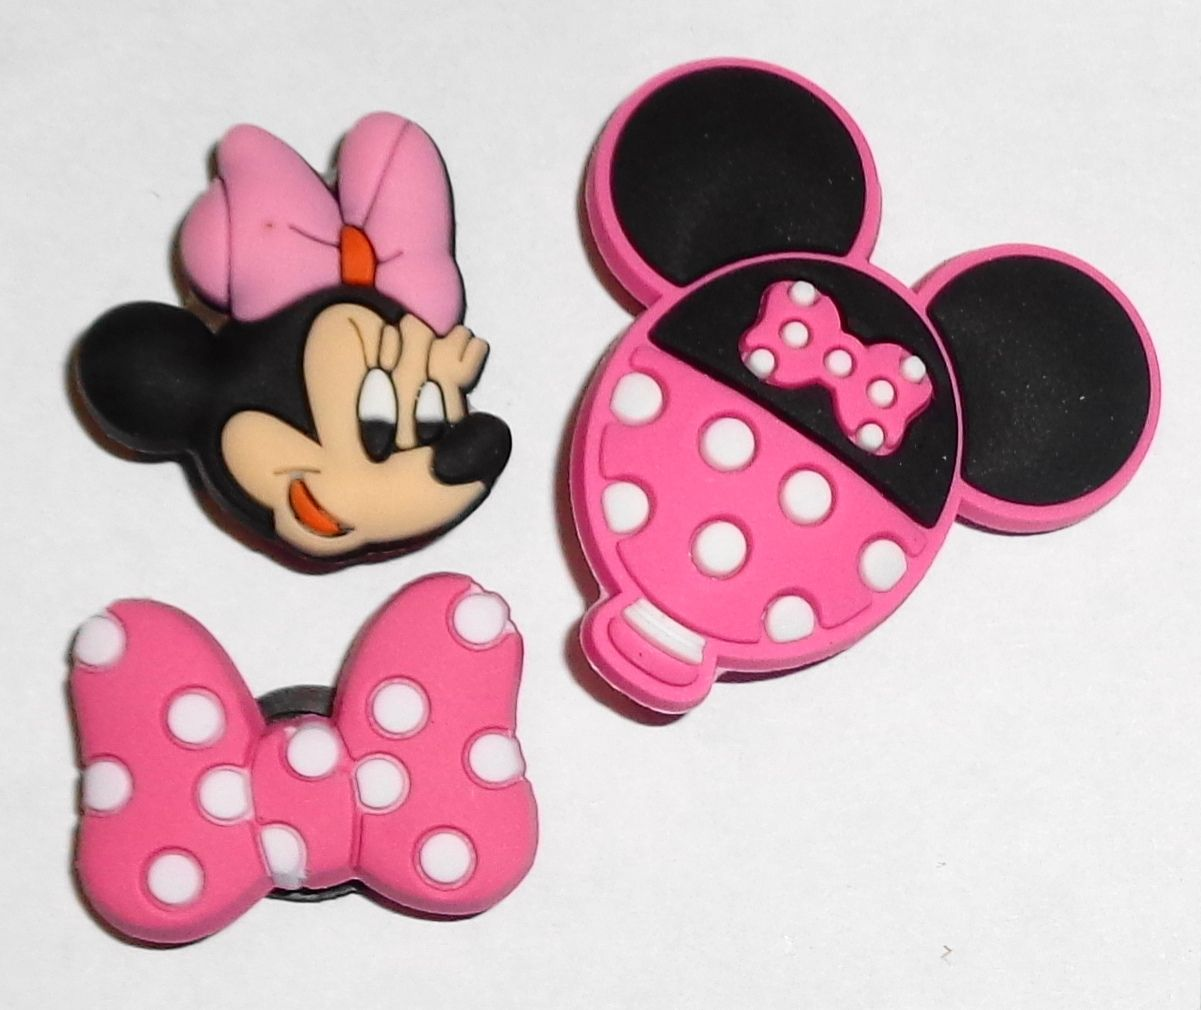 Mickey /& Friends Shoe Charms Shoe Buttons Shoe Pins for Your Crocs like Jibbitz